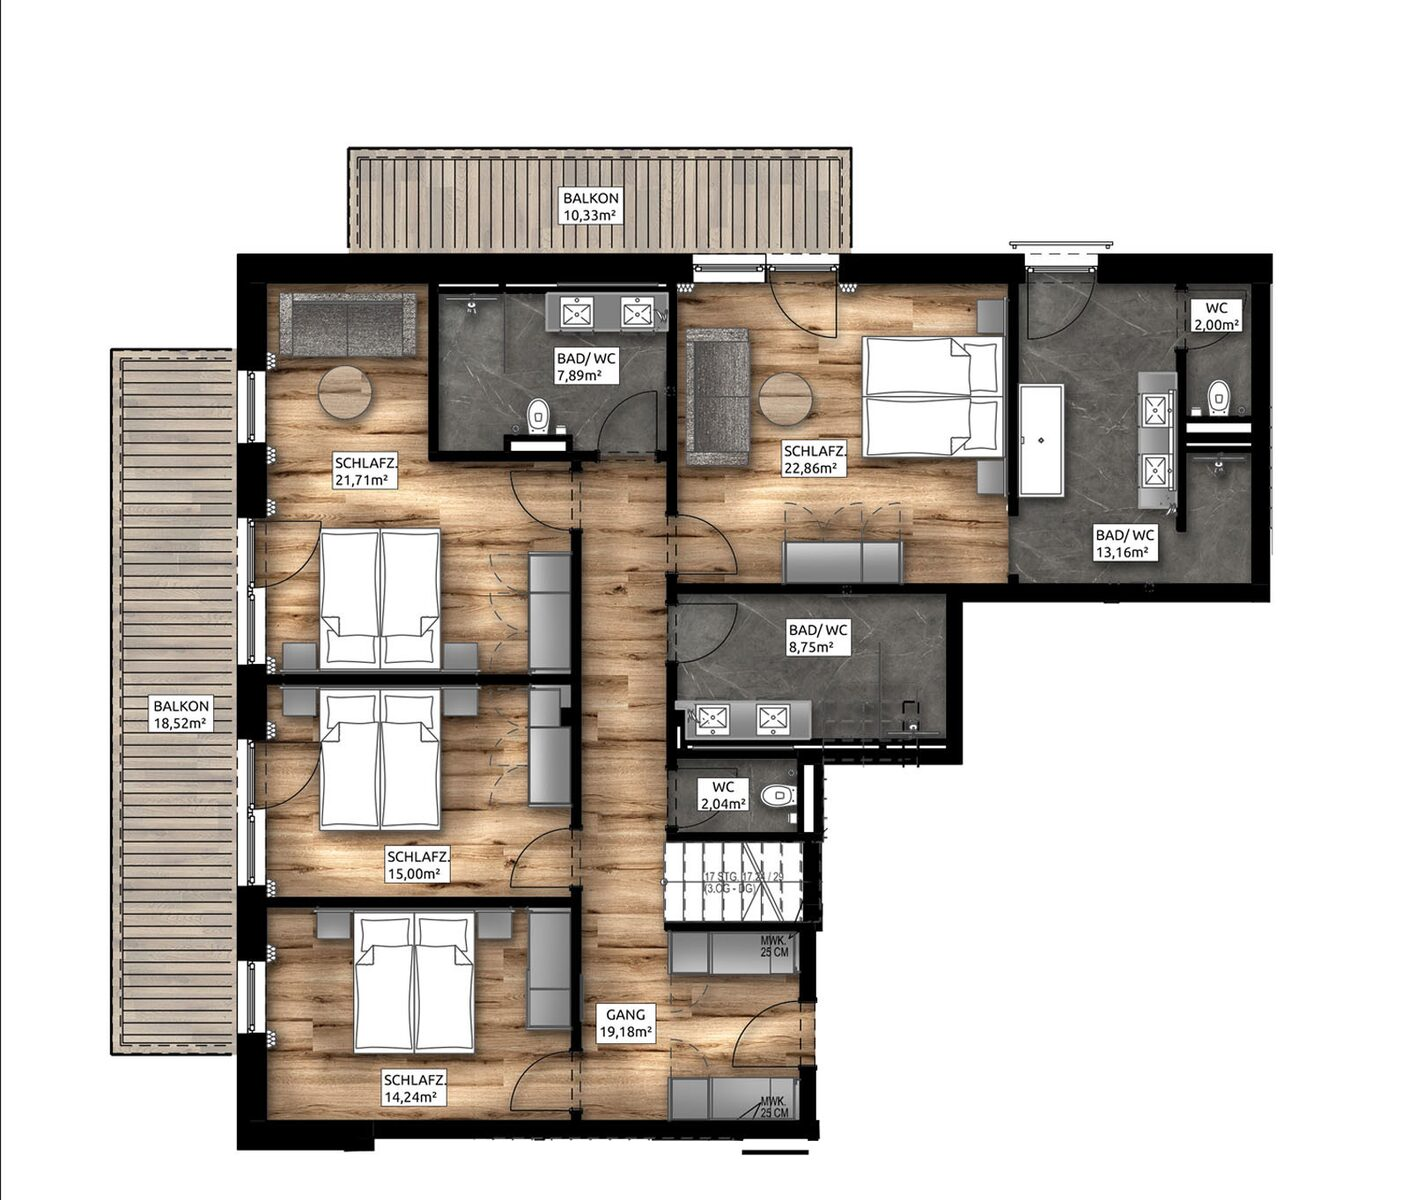 Family Penthouse Apartment | 8-10 Pers.